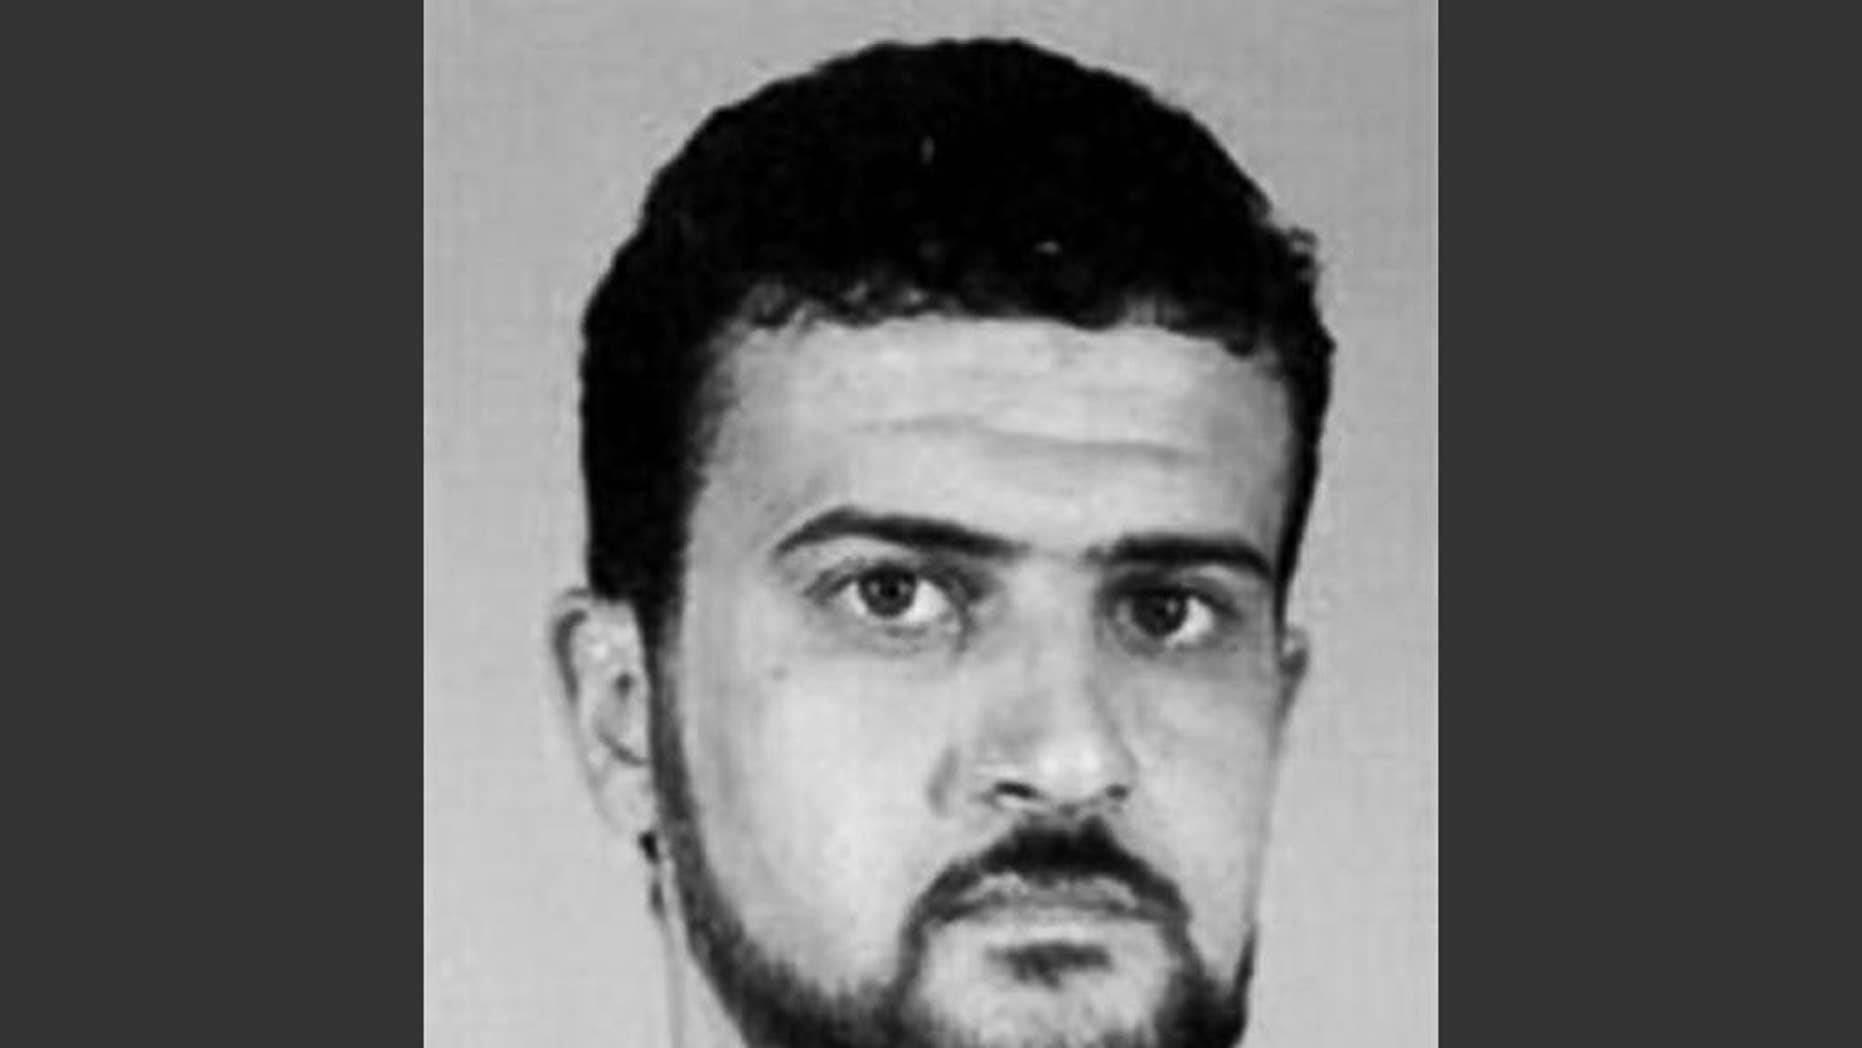 FILE - This file image from the FBI website shows al-Qaida leader Abu Anas al-Libi. The wife of Al-Libi, a Libyan accused of being an al-Qaida member involved in the 1998 bombings of two U.S. embassies in Africa, said Saturday, Jan. 3, 2015, that he has died of complications from liver surgery. (AP Photo/FBI, File)